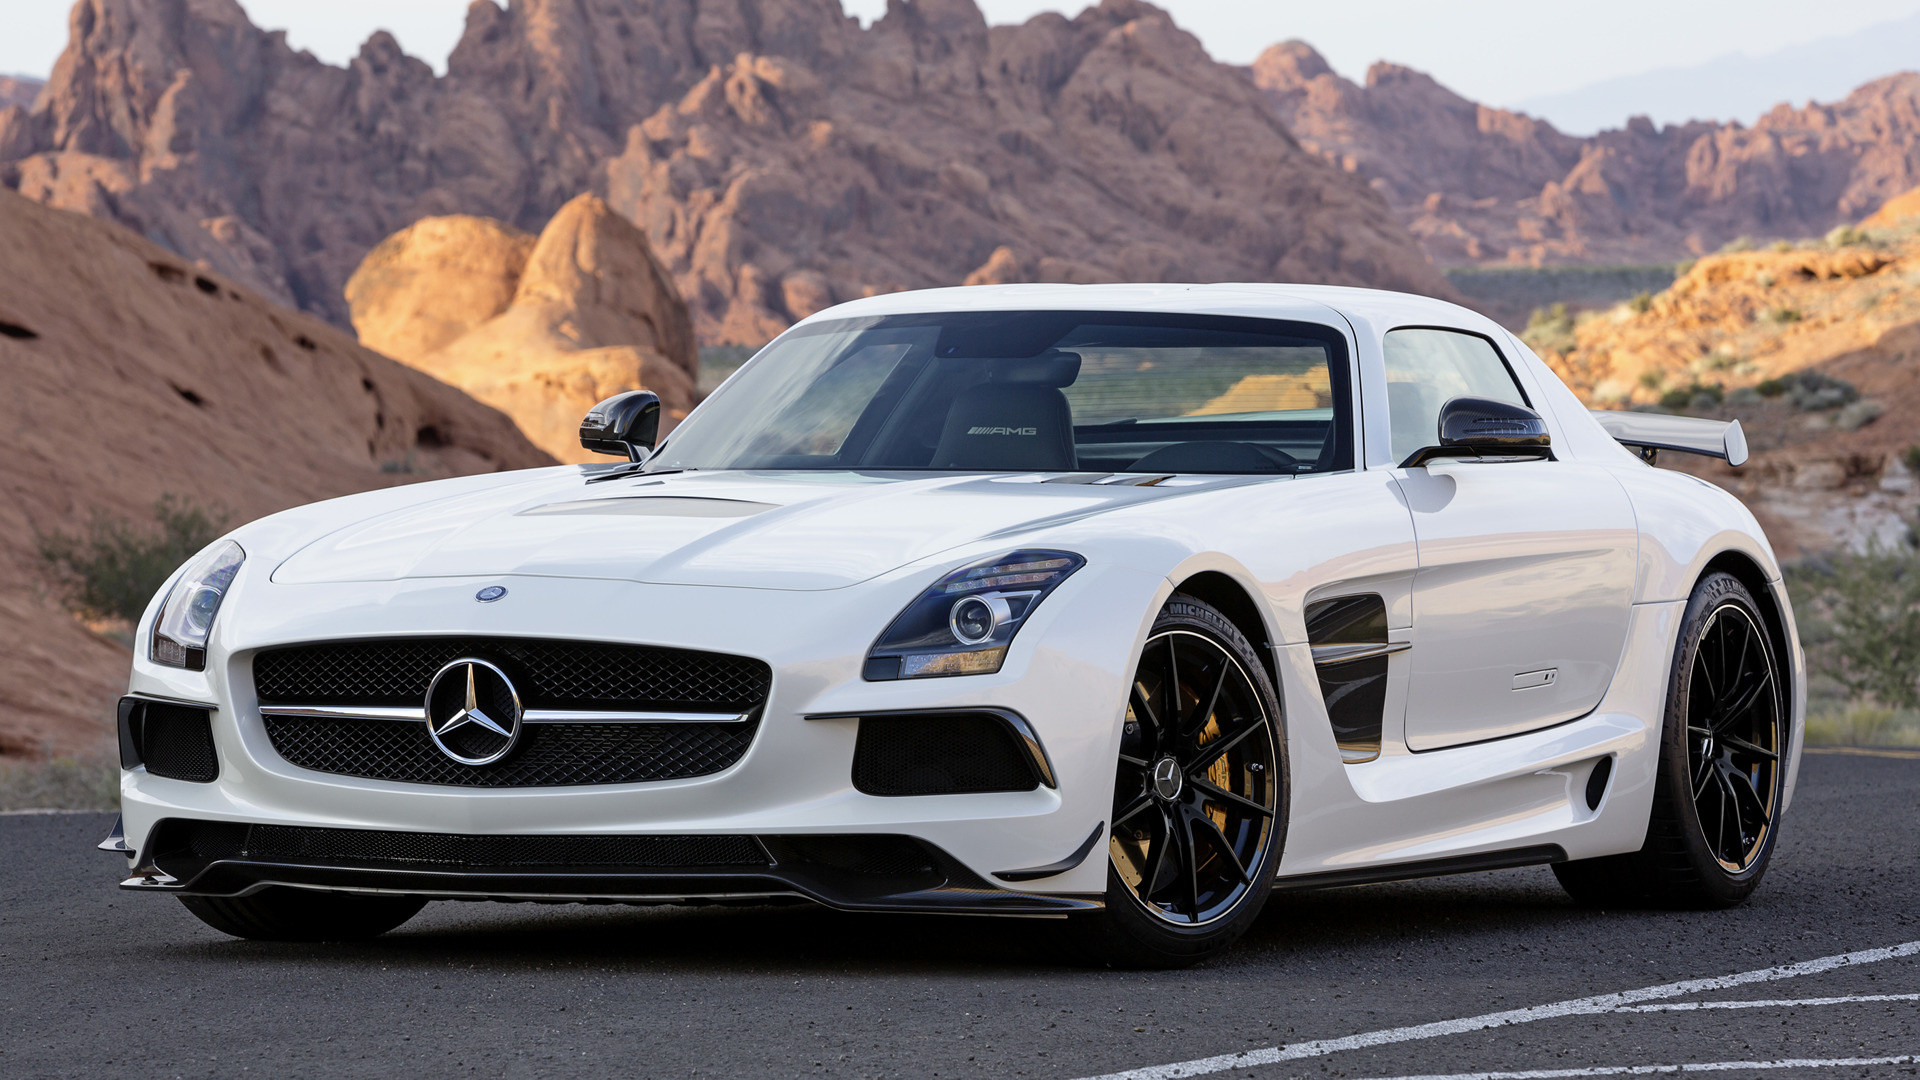 1920x1080 HD 16:9 · Wide 8:5 · Mercedes-Benz SLS AMG ...